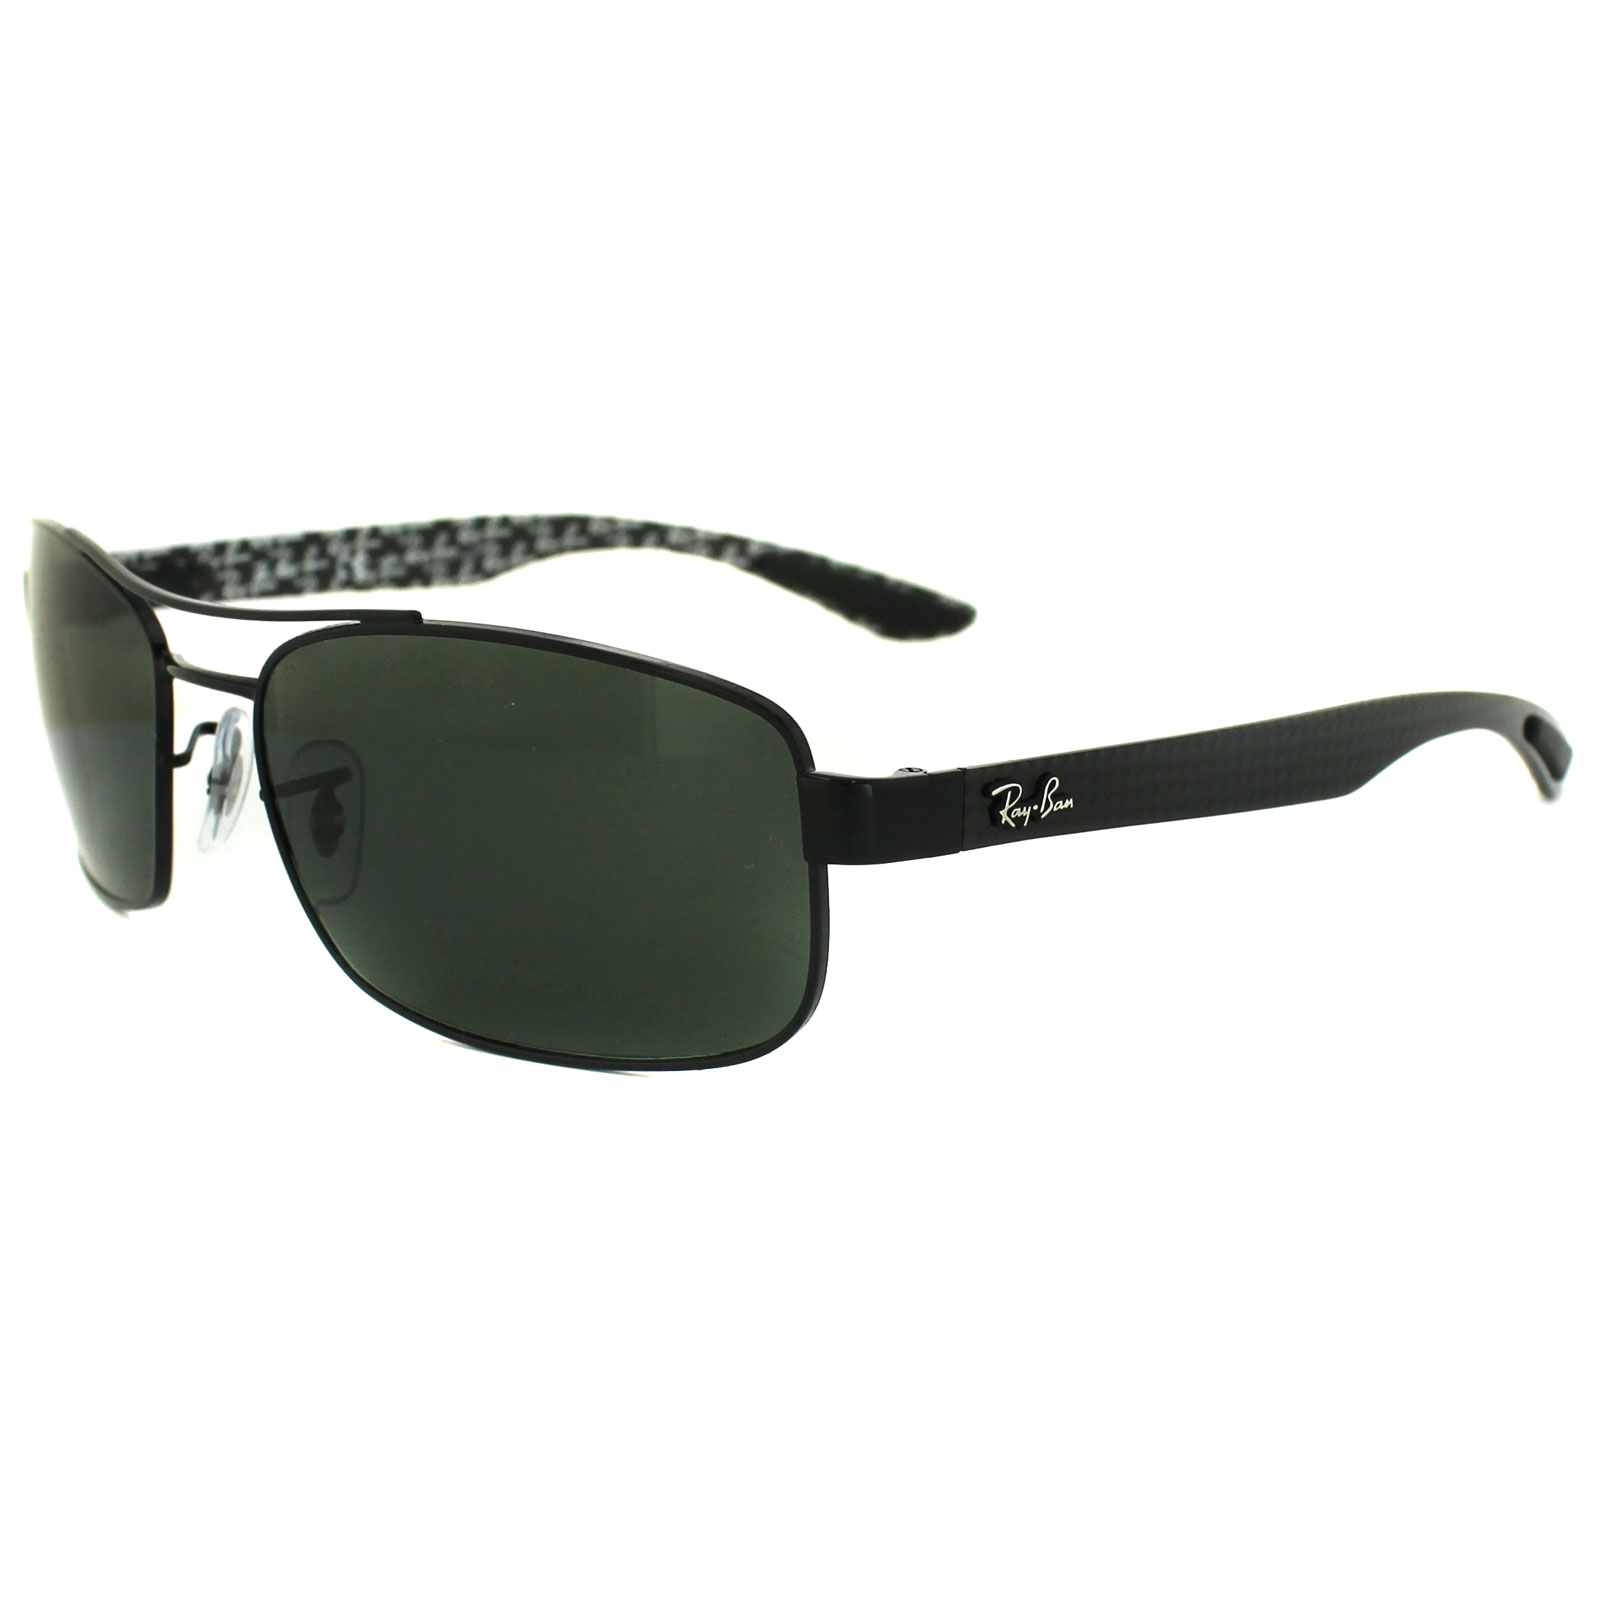 Sunglasses RB8316 002/N5 Negro, 62 Ray-Ban